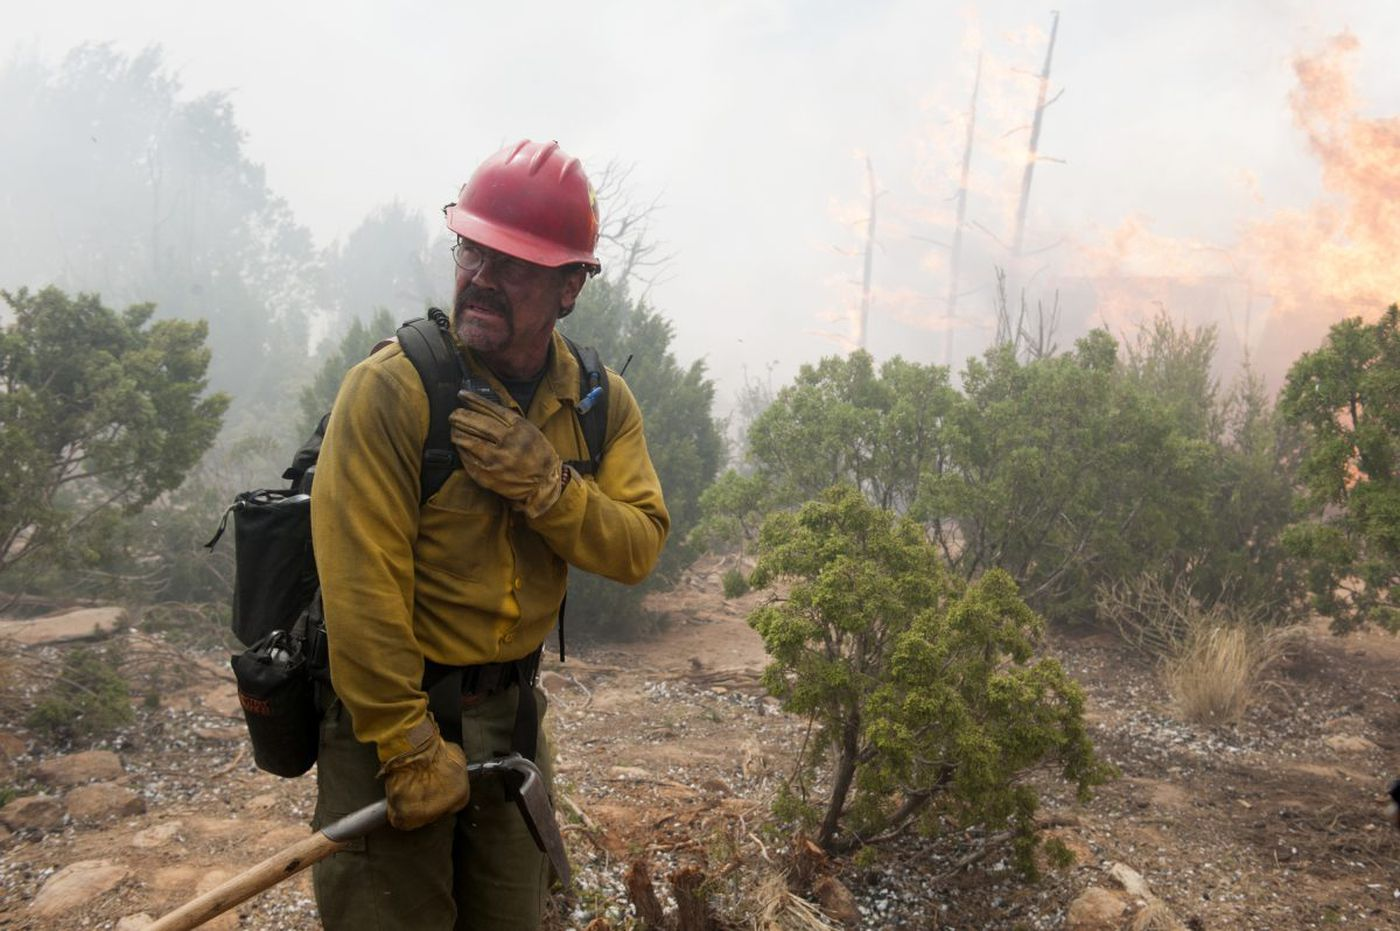 'Only the Brave': A heartfelt tribute to men who fight wildfires